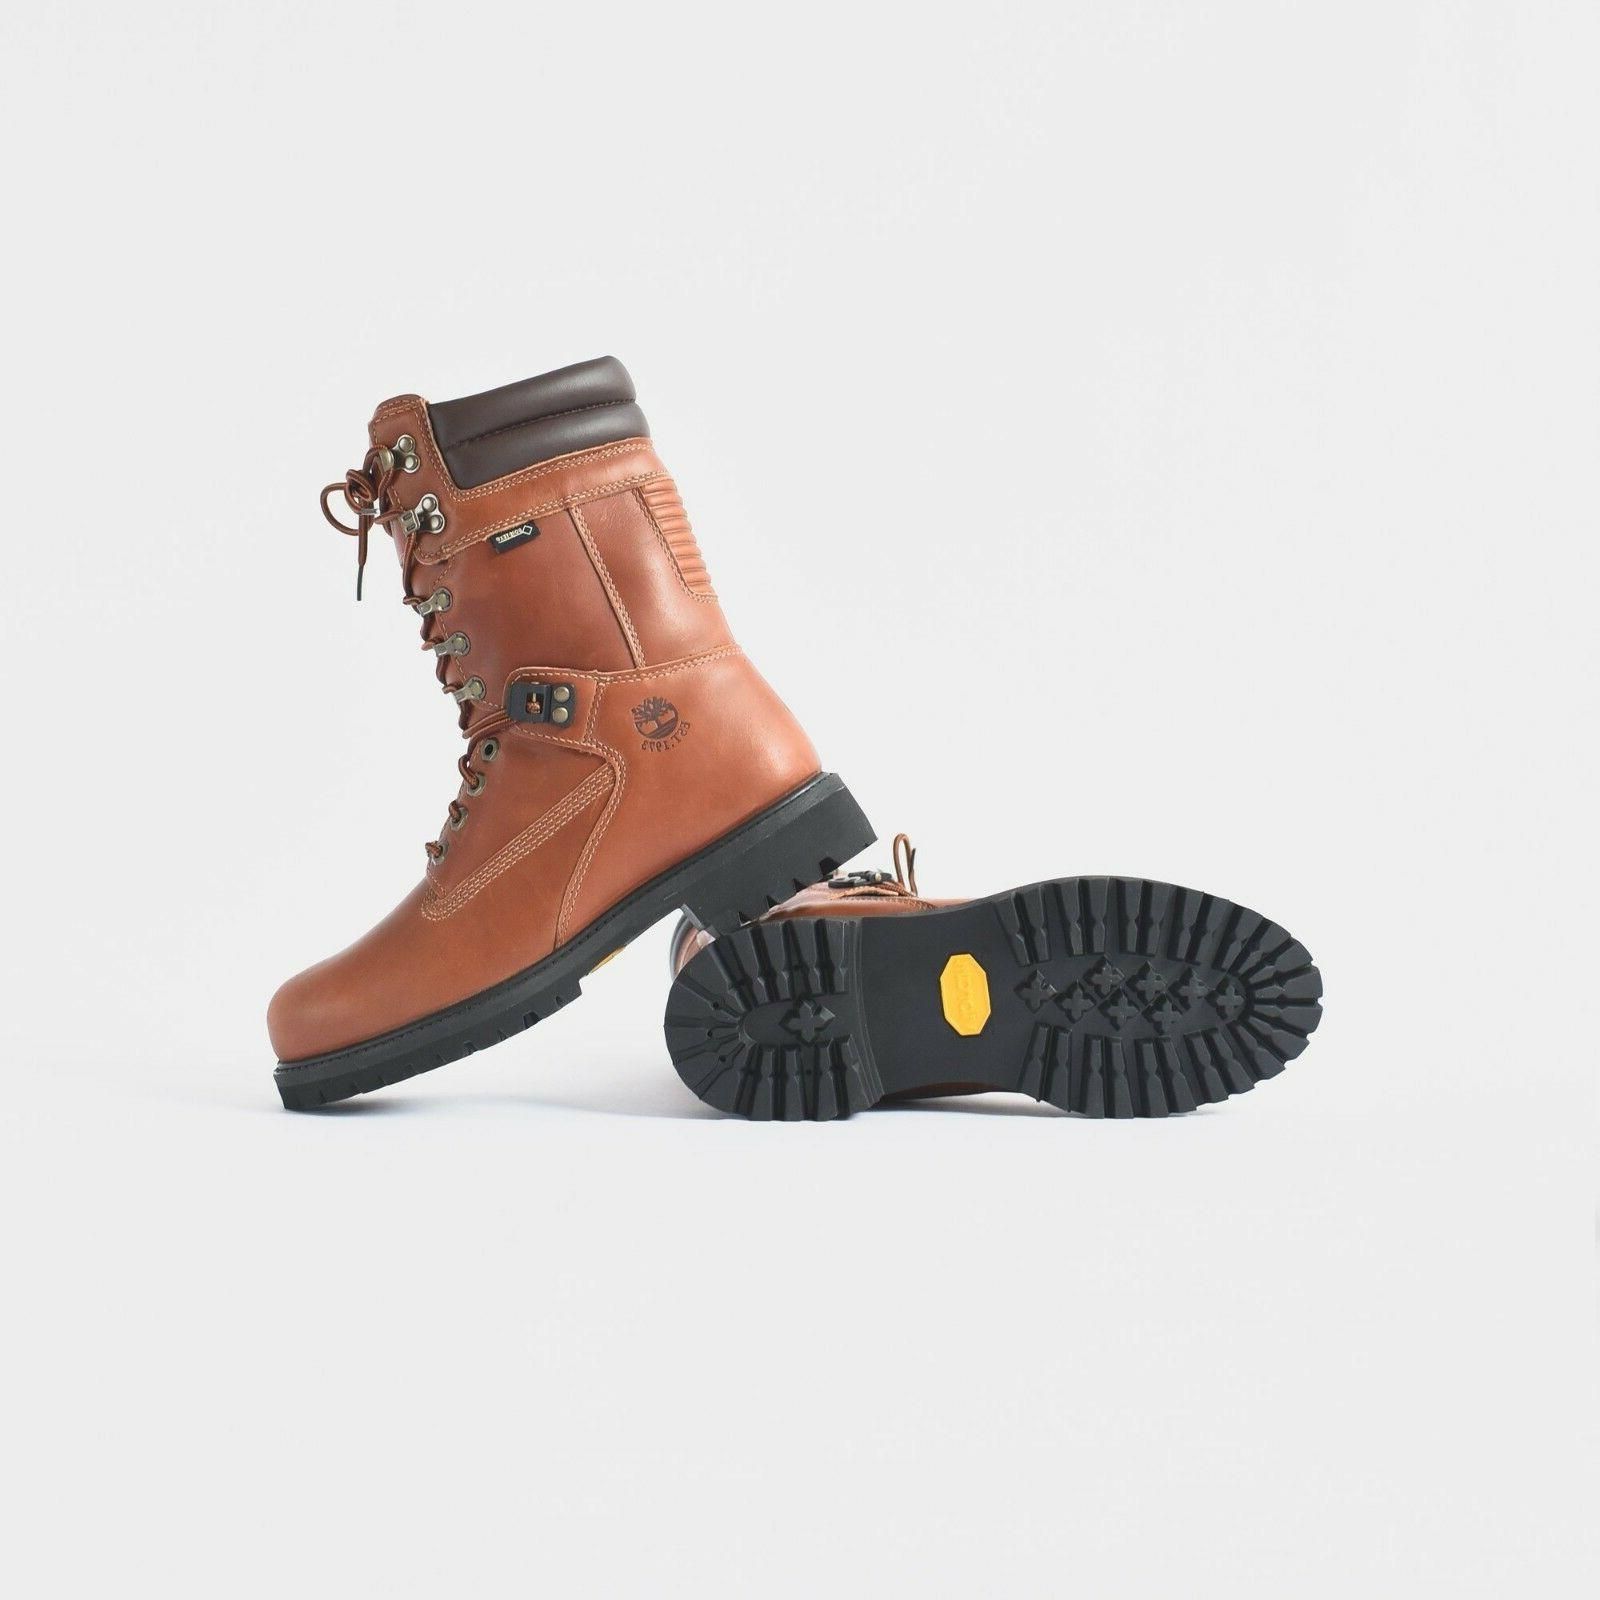 {A1Z56} Release Extreme Boots *NEW*